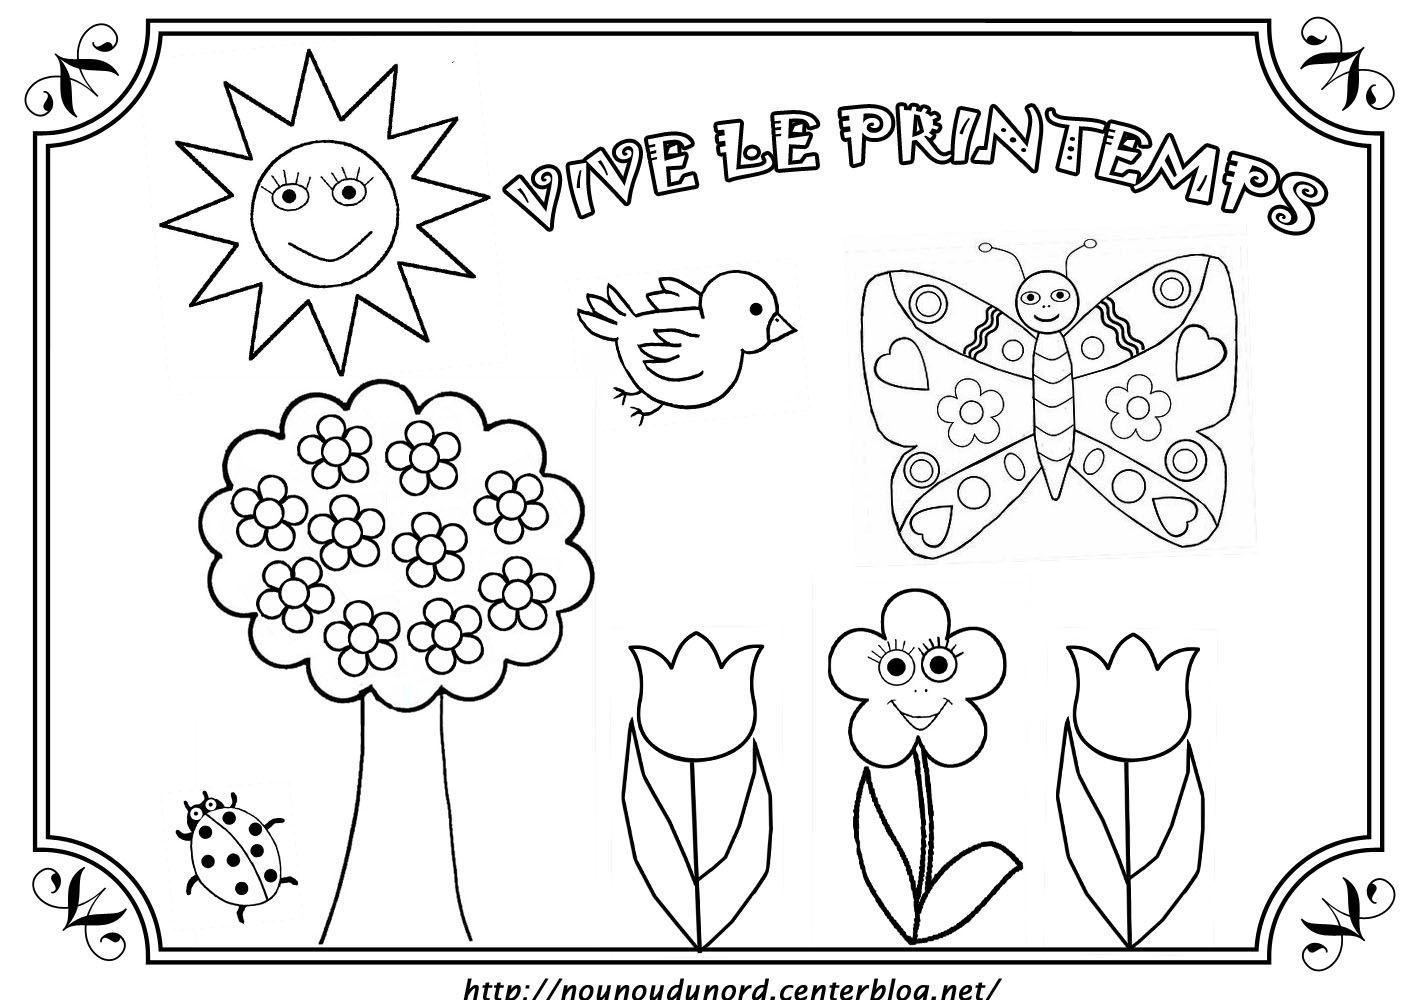 Coloriage Printemps A Imprimer Pdf.Coloriage Printemps Dessine Par Nounoudunord